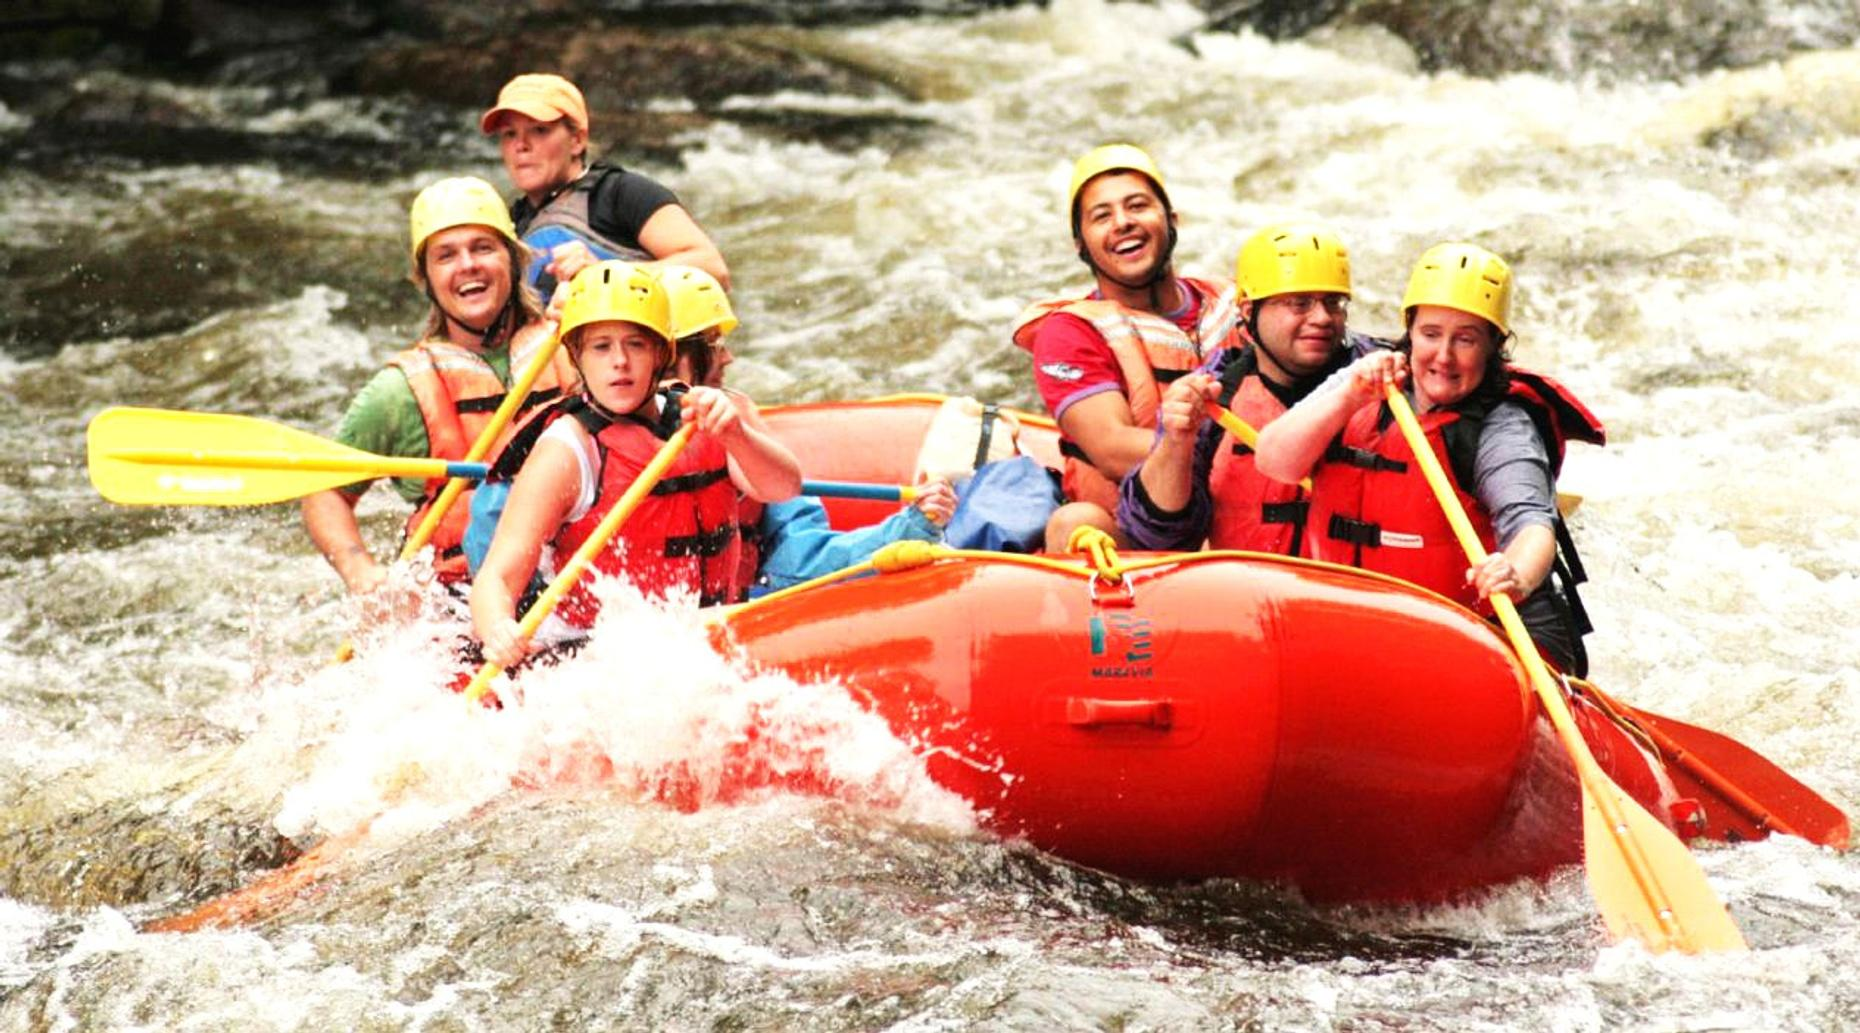 Snoqualmie River Intermediate Whitewater Rafting